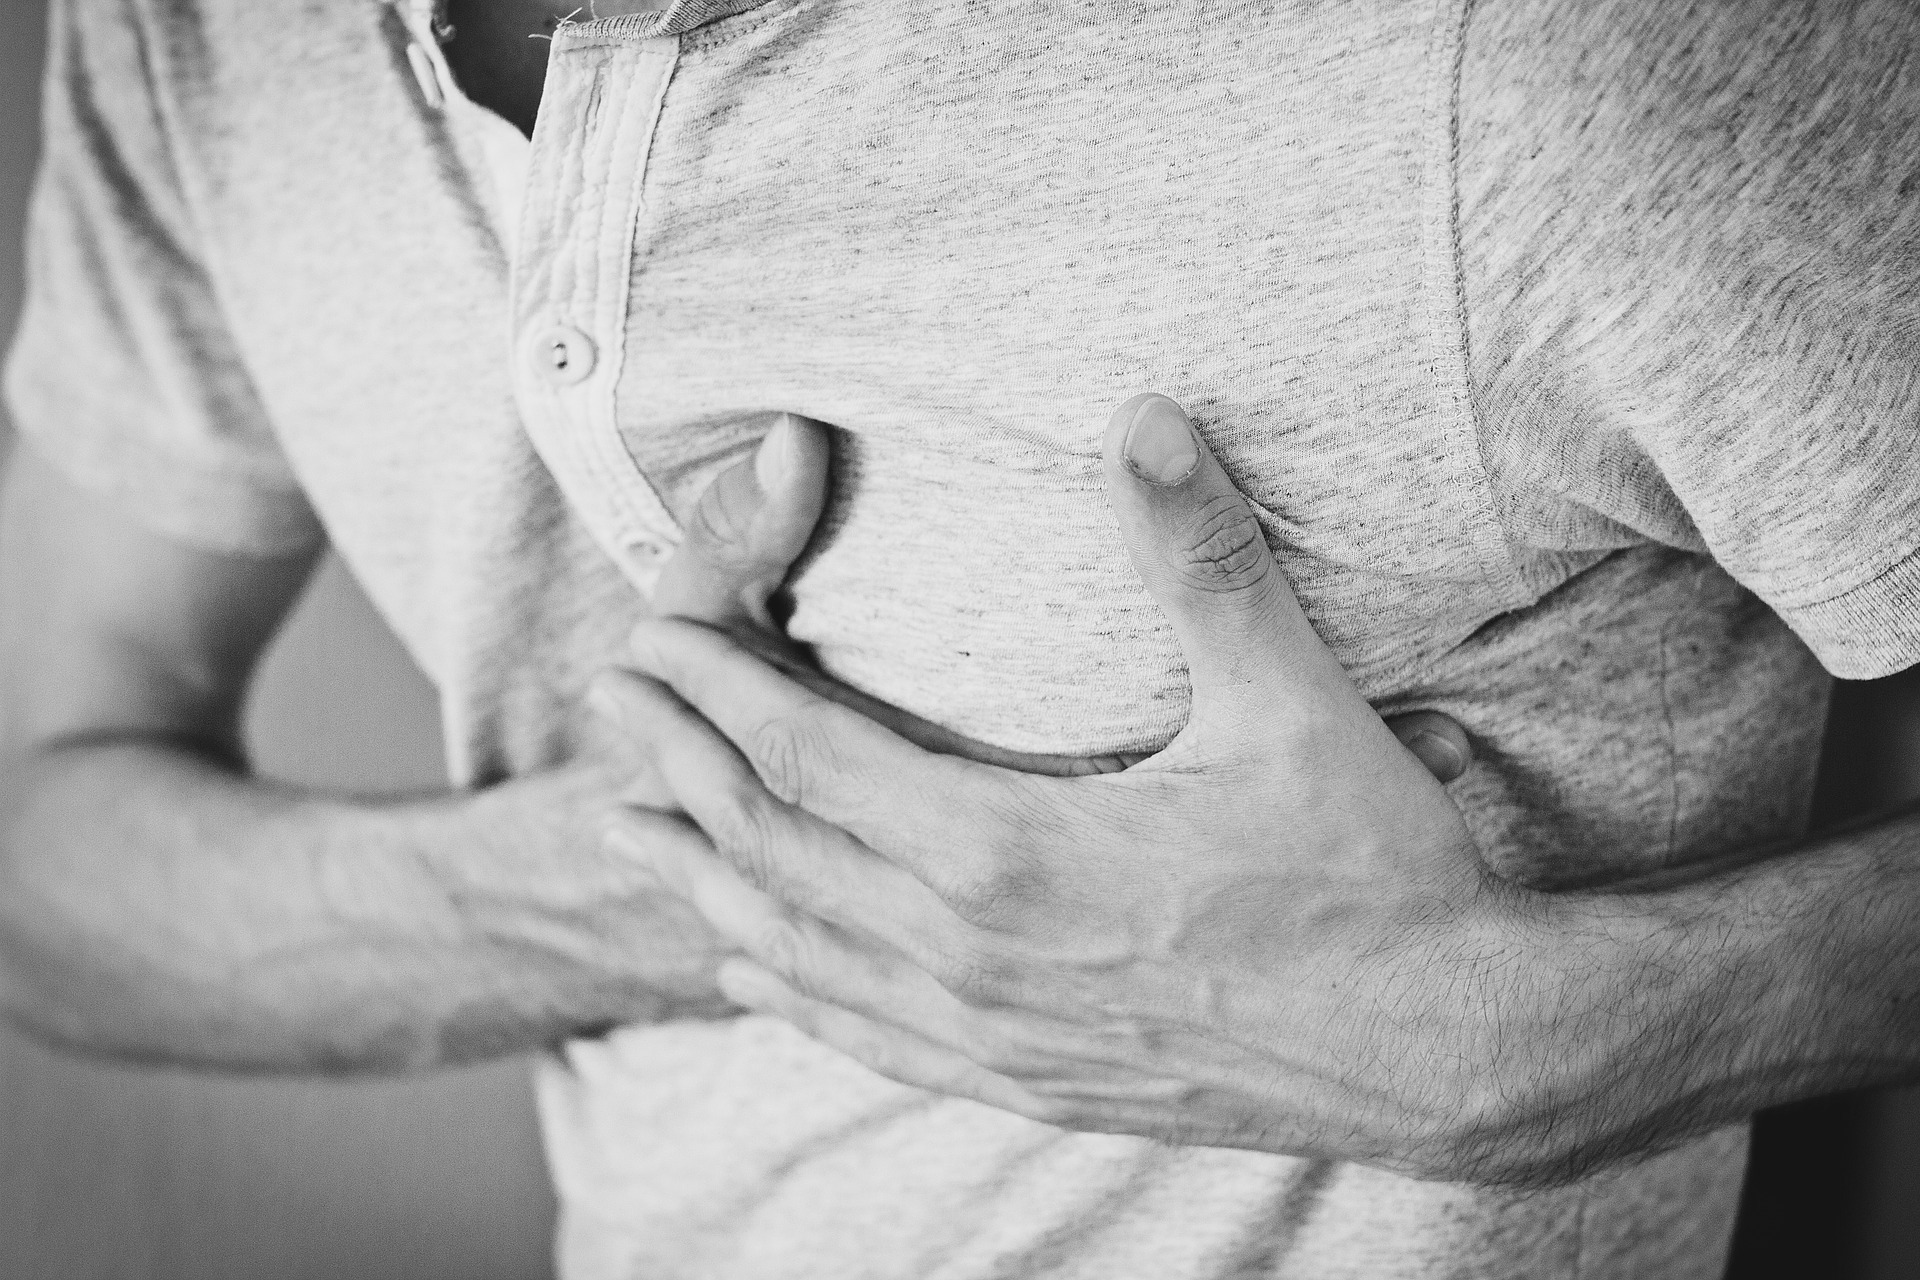 Painkiller Linked to Increased Risk of Major Heart Problems